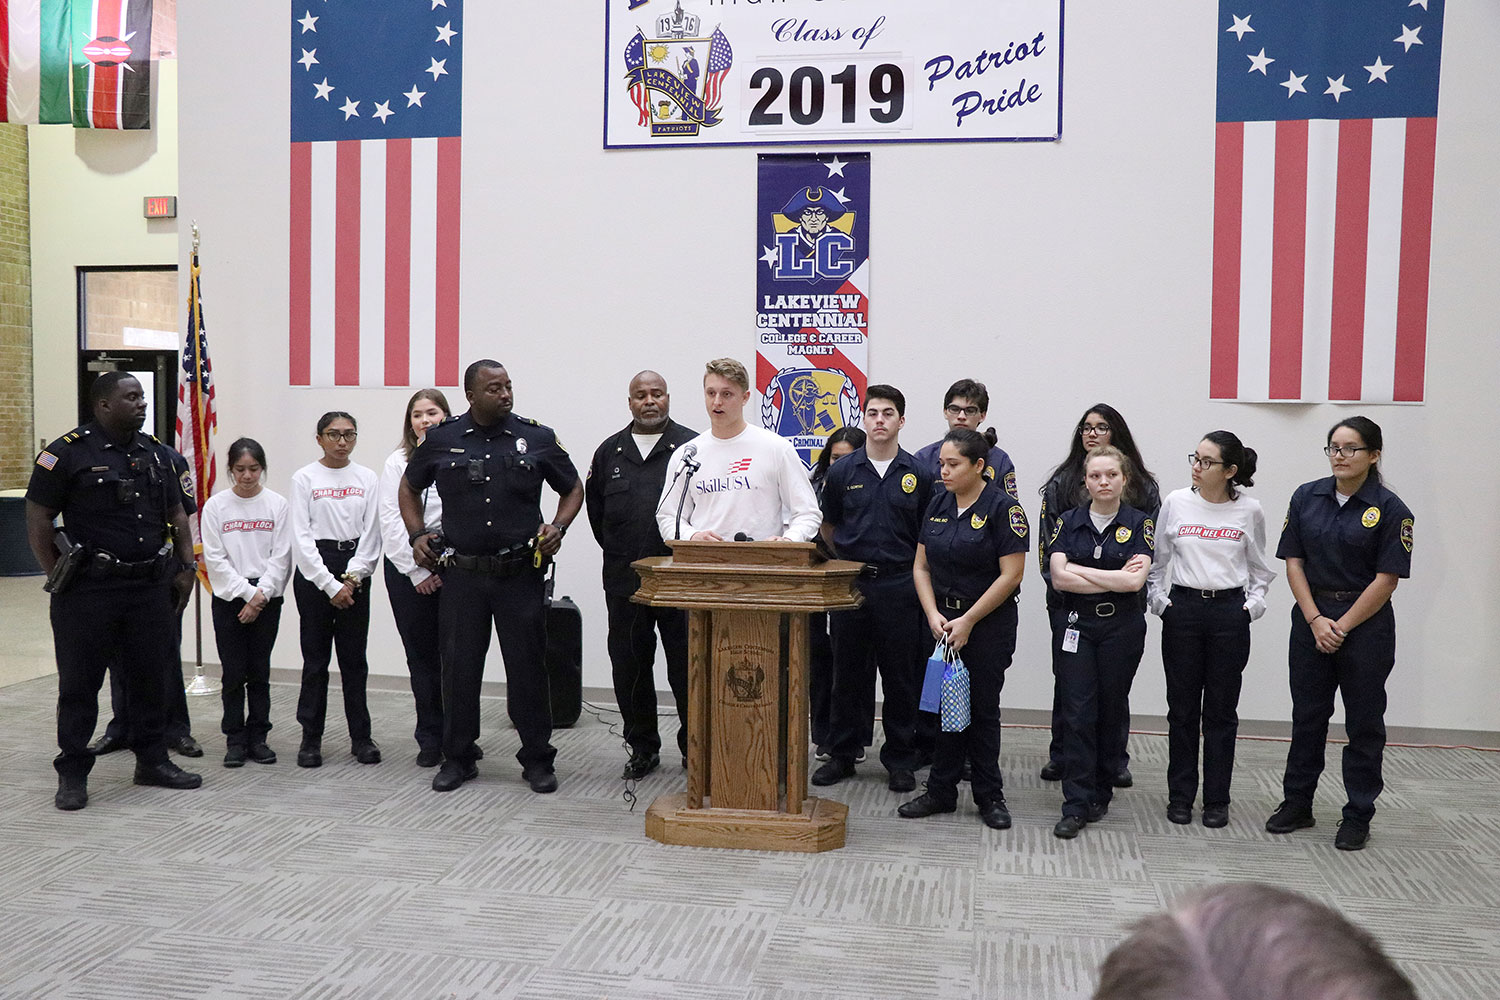 Skills USA Law students stand with law teacher Cedric Davis and multiple police officers at the